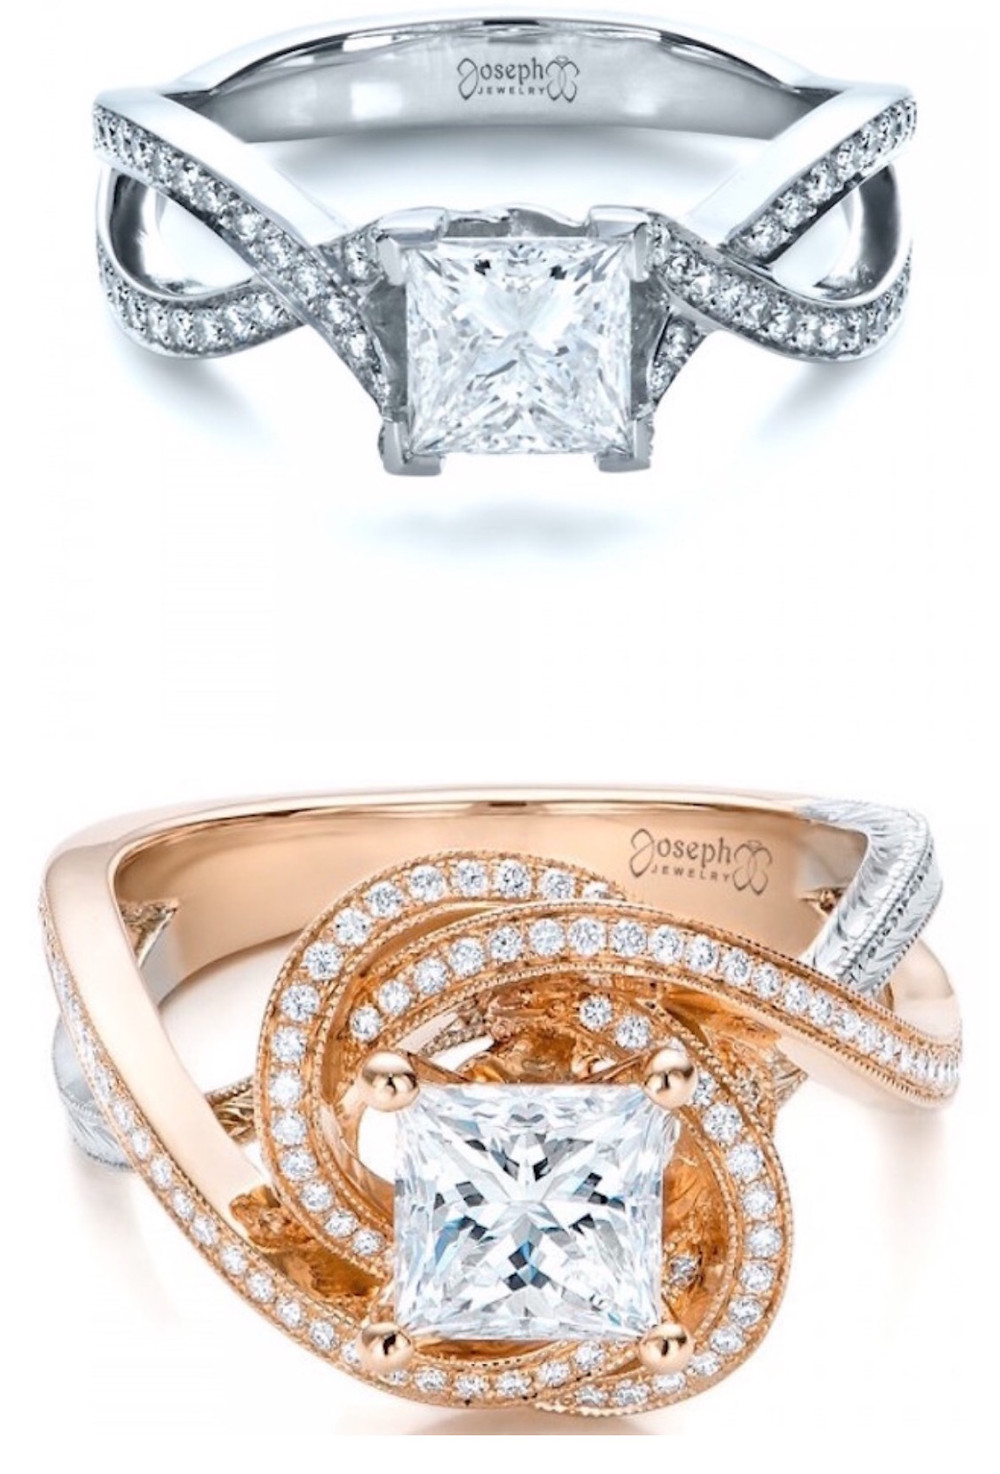 over under engagement rings